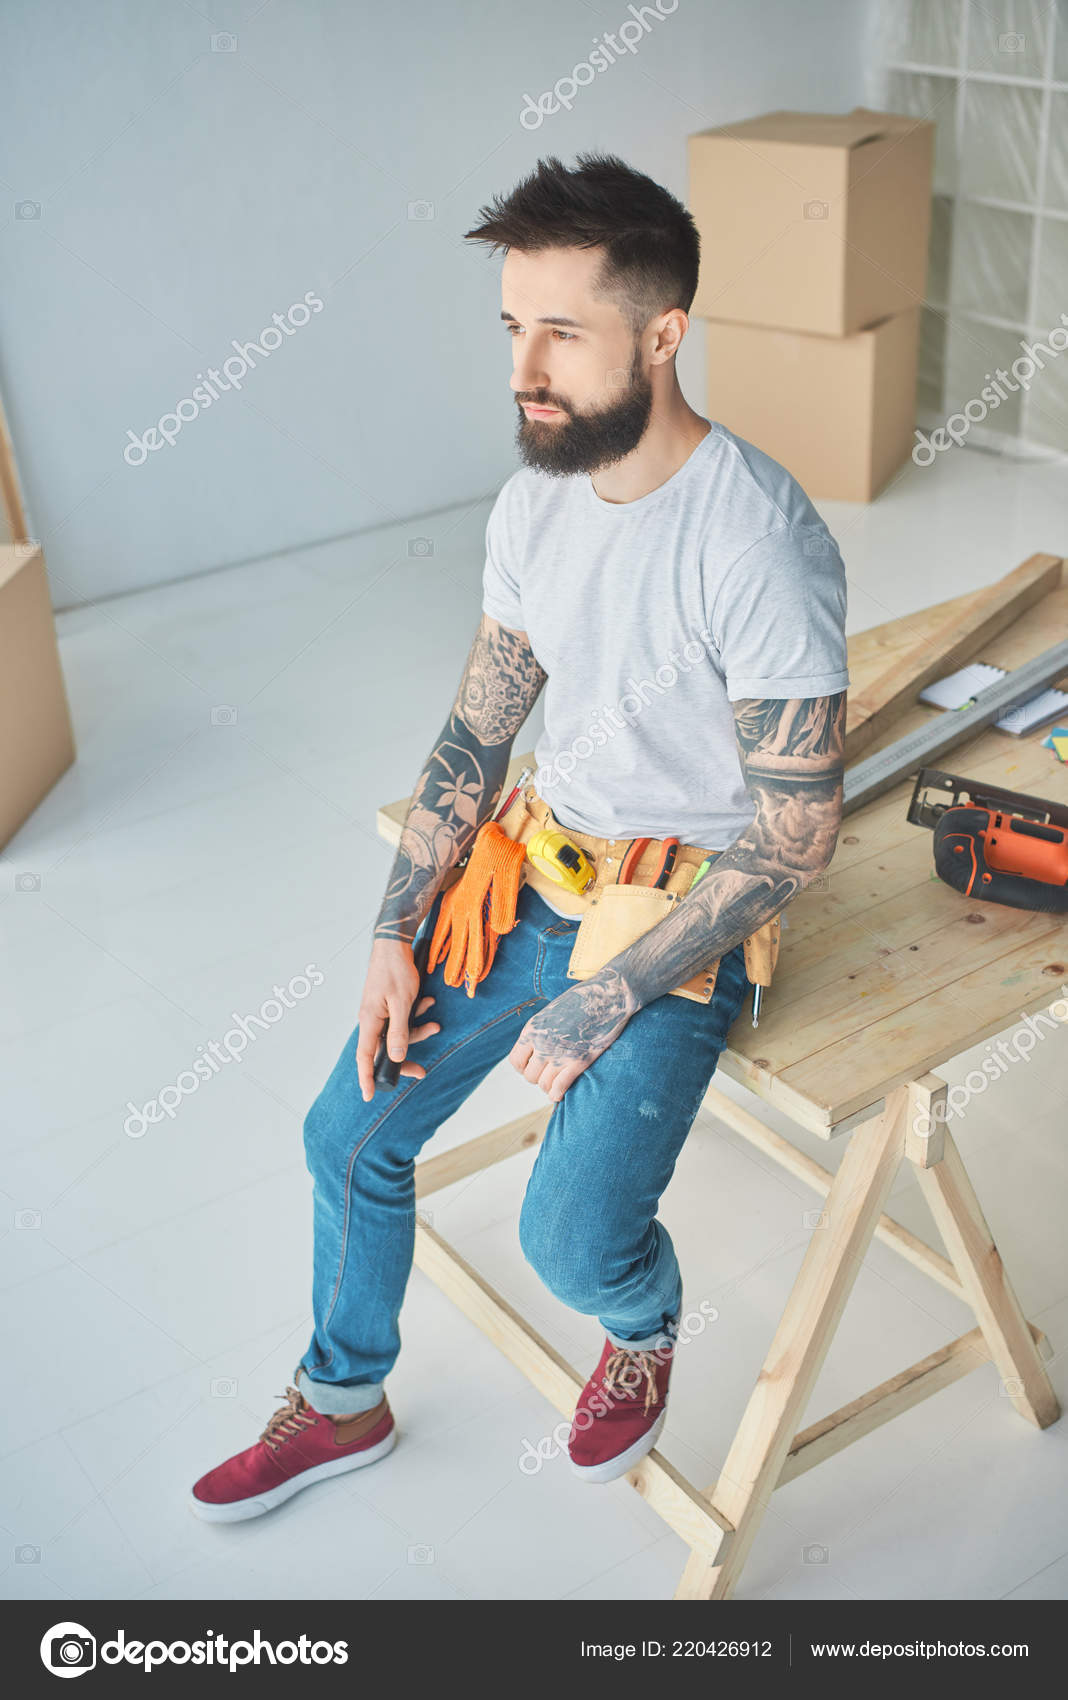 720def32c High angle view of bearded repairman with tattoos and tools leaning on  wooden surface in new apartment — Photo by ...